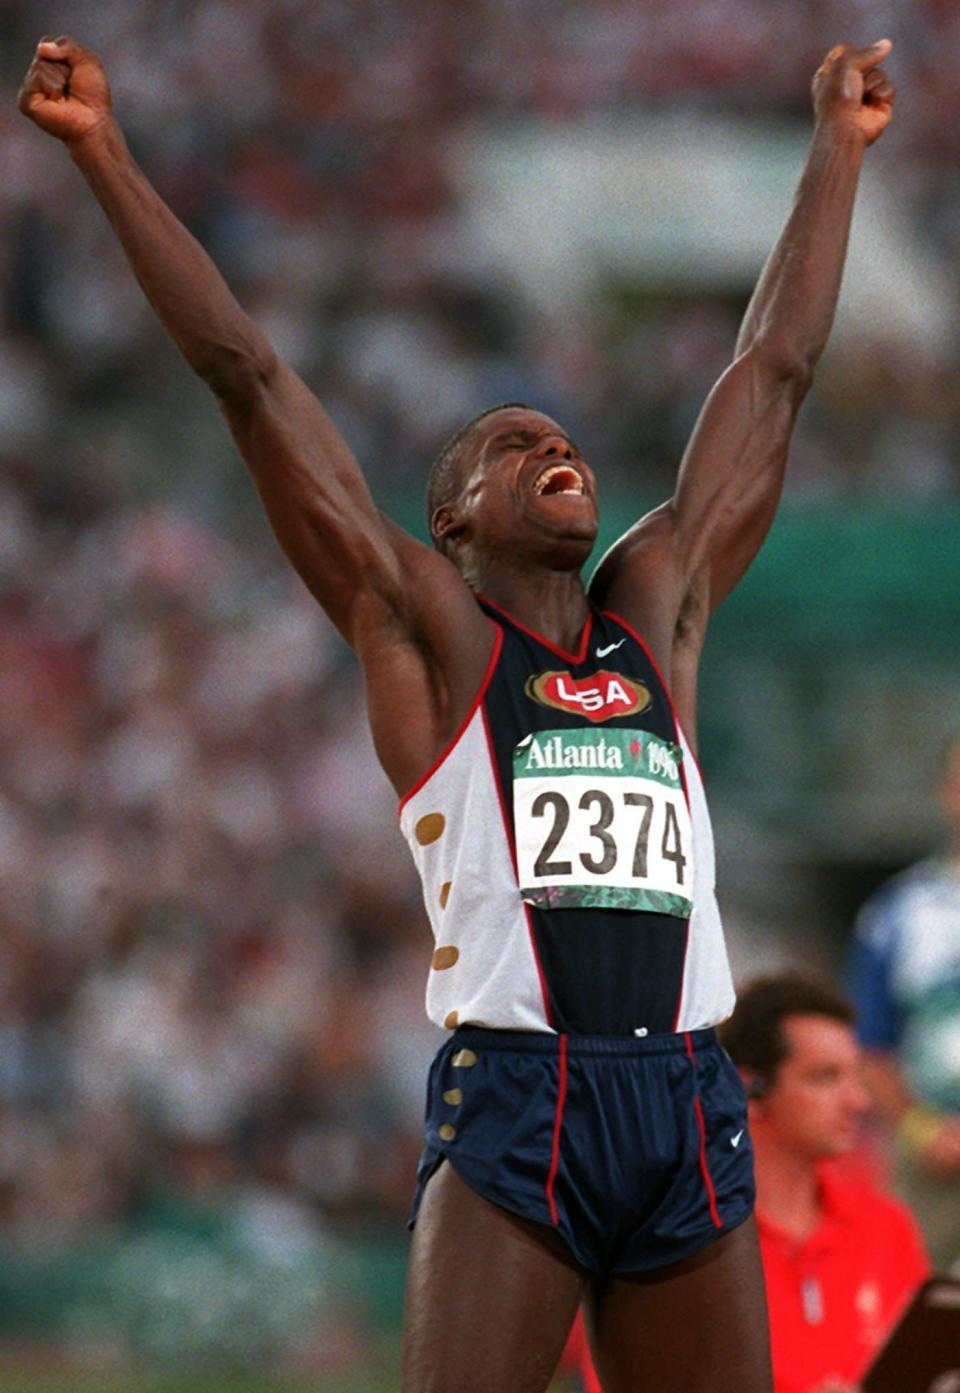 FILE - In this Monday, July 29, 1996, file photo, Carl Lewis of the United States celebrates after his third jump in the men's long jump final at the 1996 Summer Olympic Games in Atlanta. (AP Photo/Diether Endlicher, File)